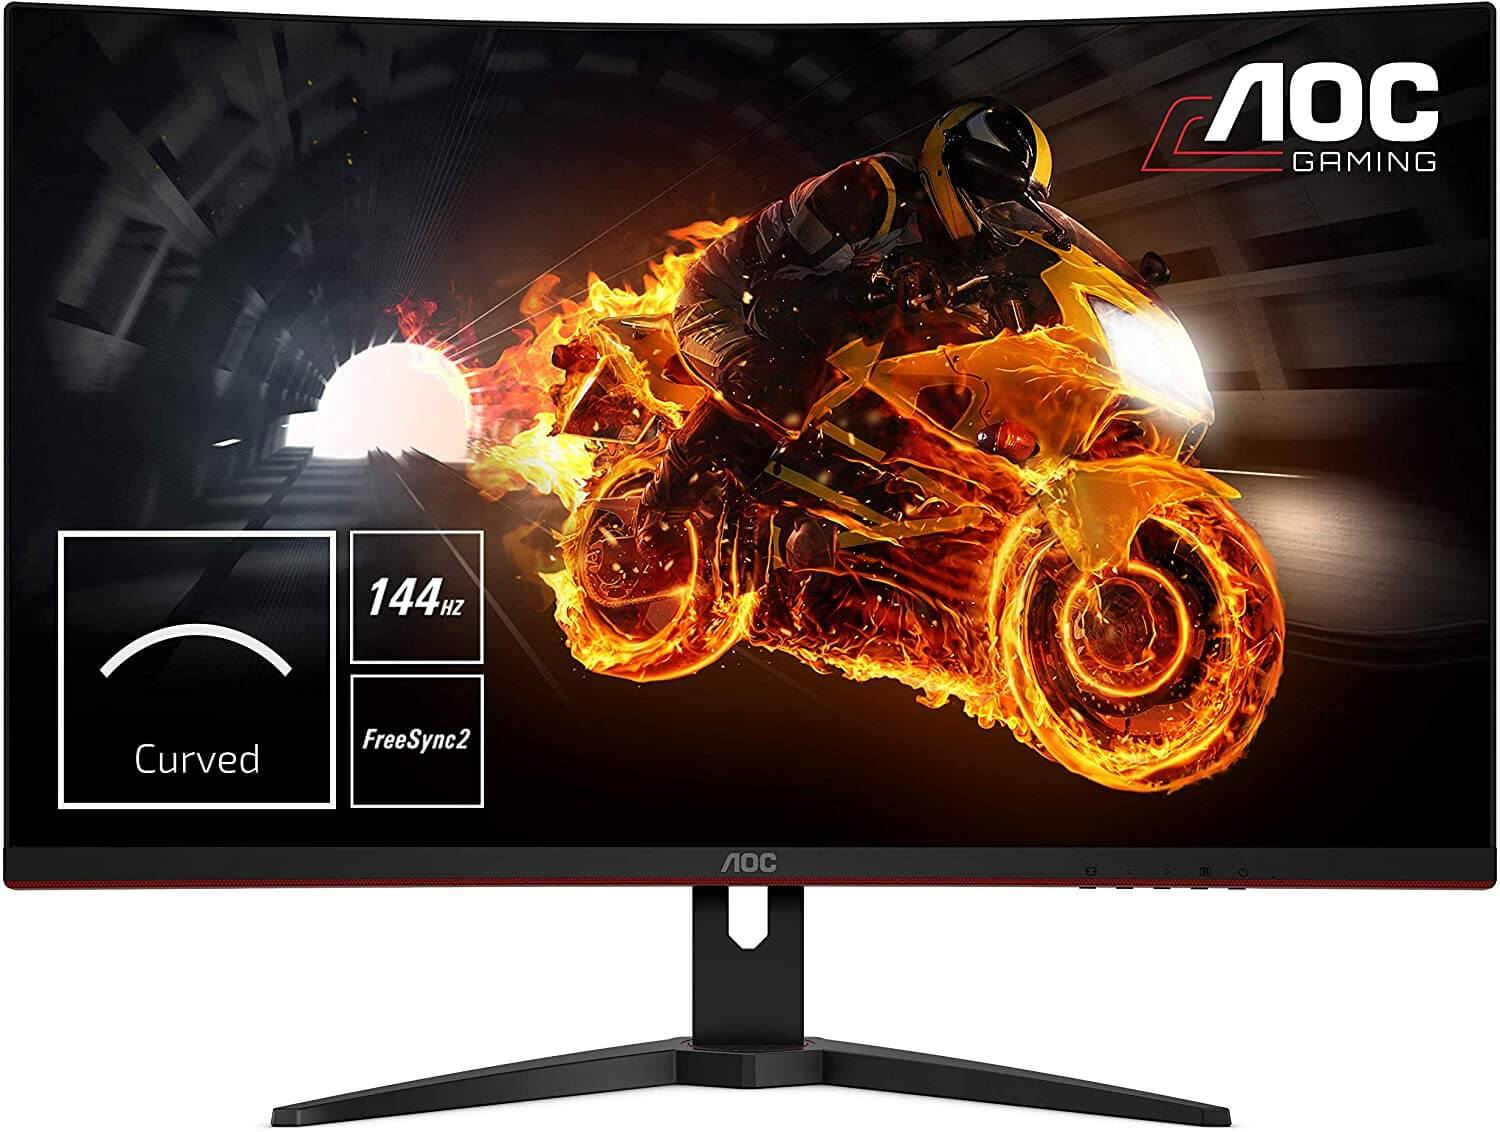 AOC Curved Monitor for Sim Racing